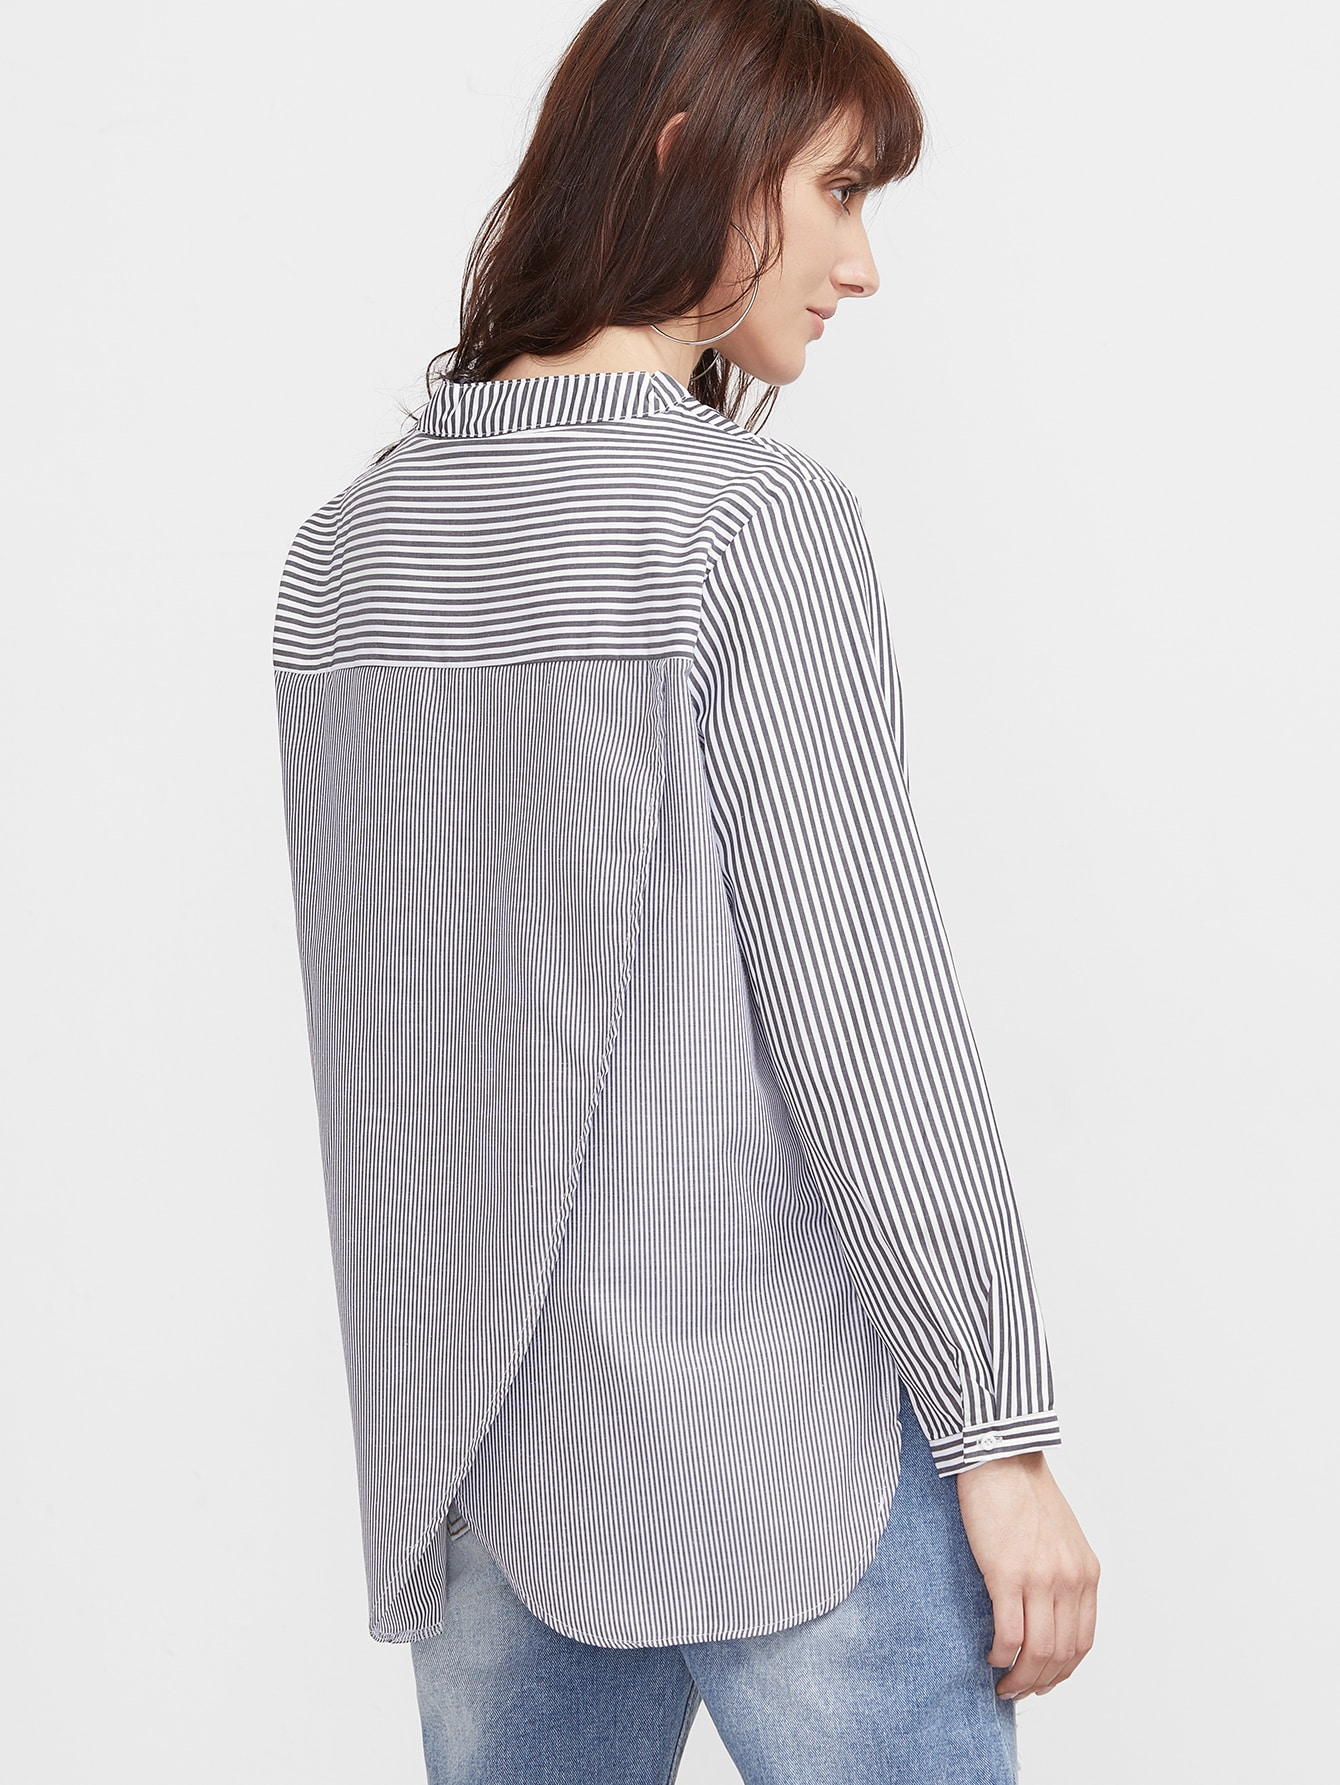 Contrast Striped Slit Side Wrap Back High Low Blouse